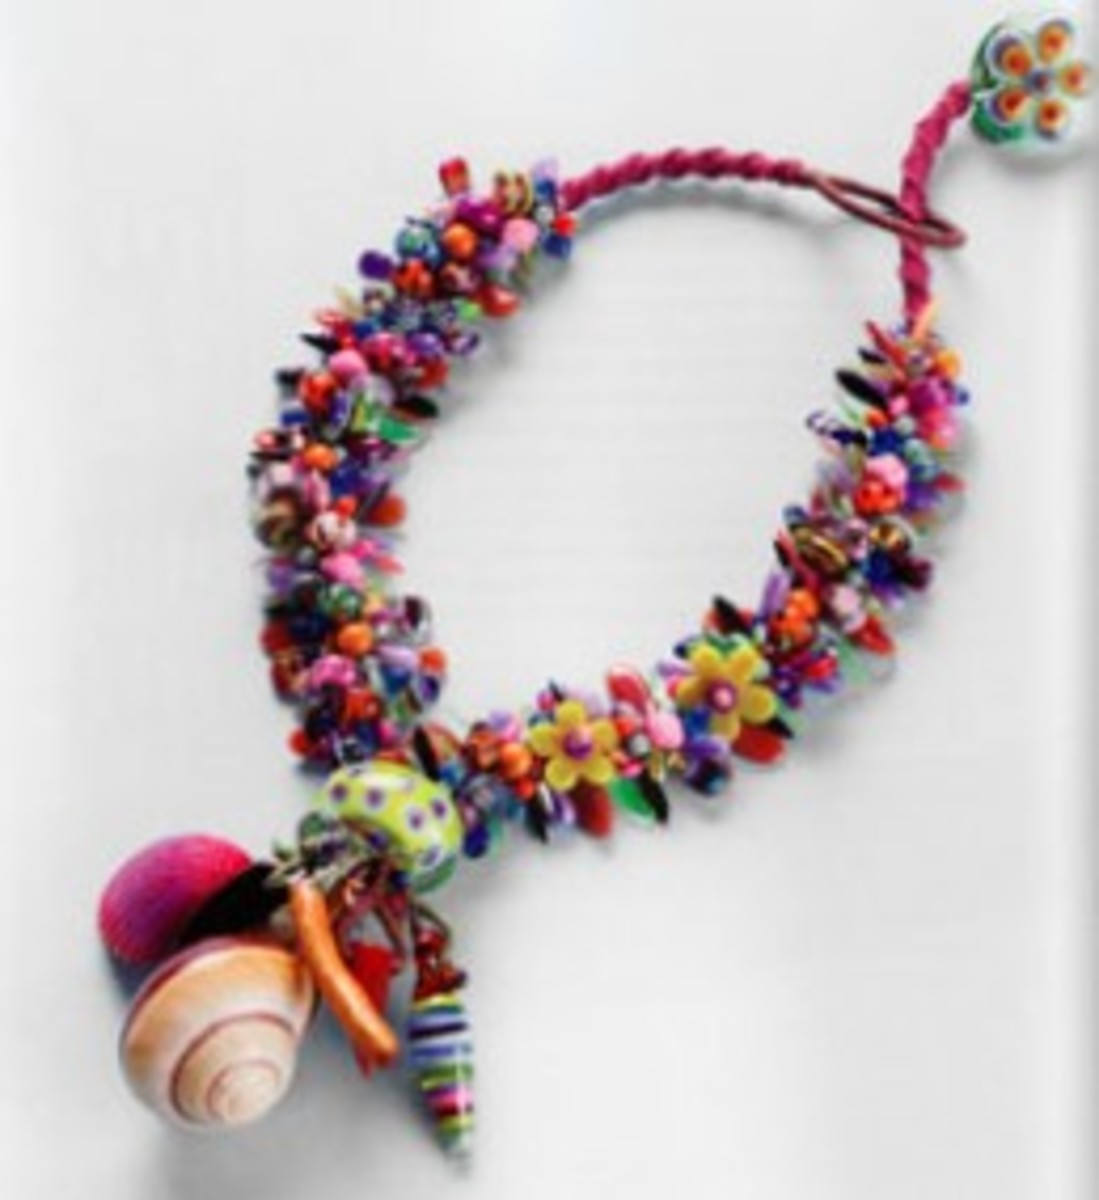 "Another project in the book ""Designing Jewelry With Glass Beads"". This is a similar project to the spiny knotted bracelet, only done as a necklace with focal beads added. For the adventurous beader!"